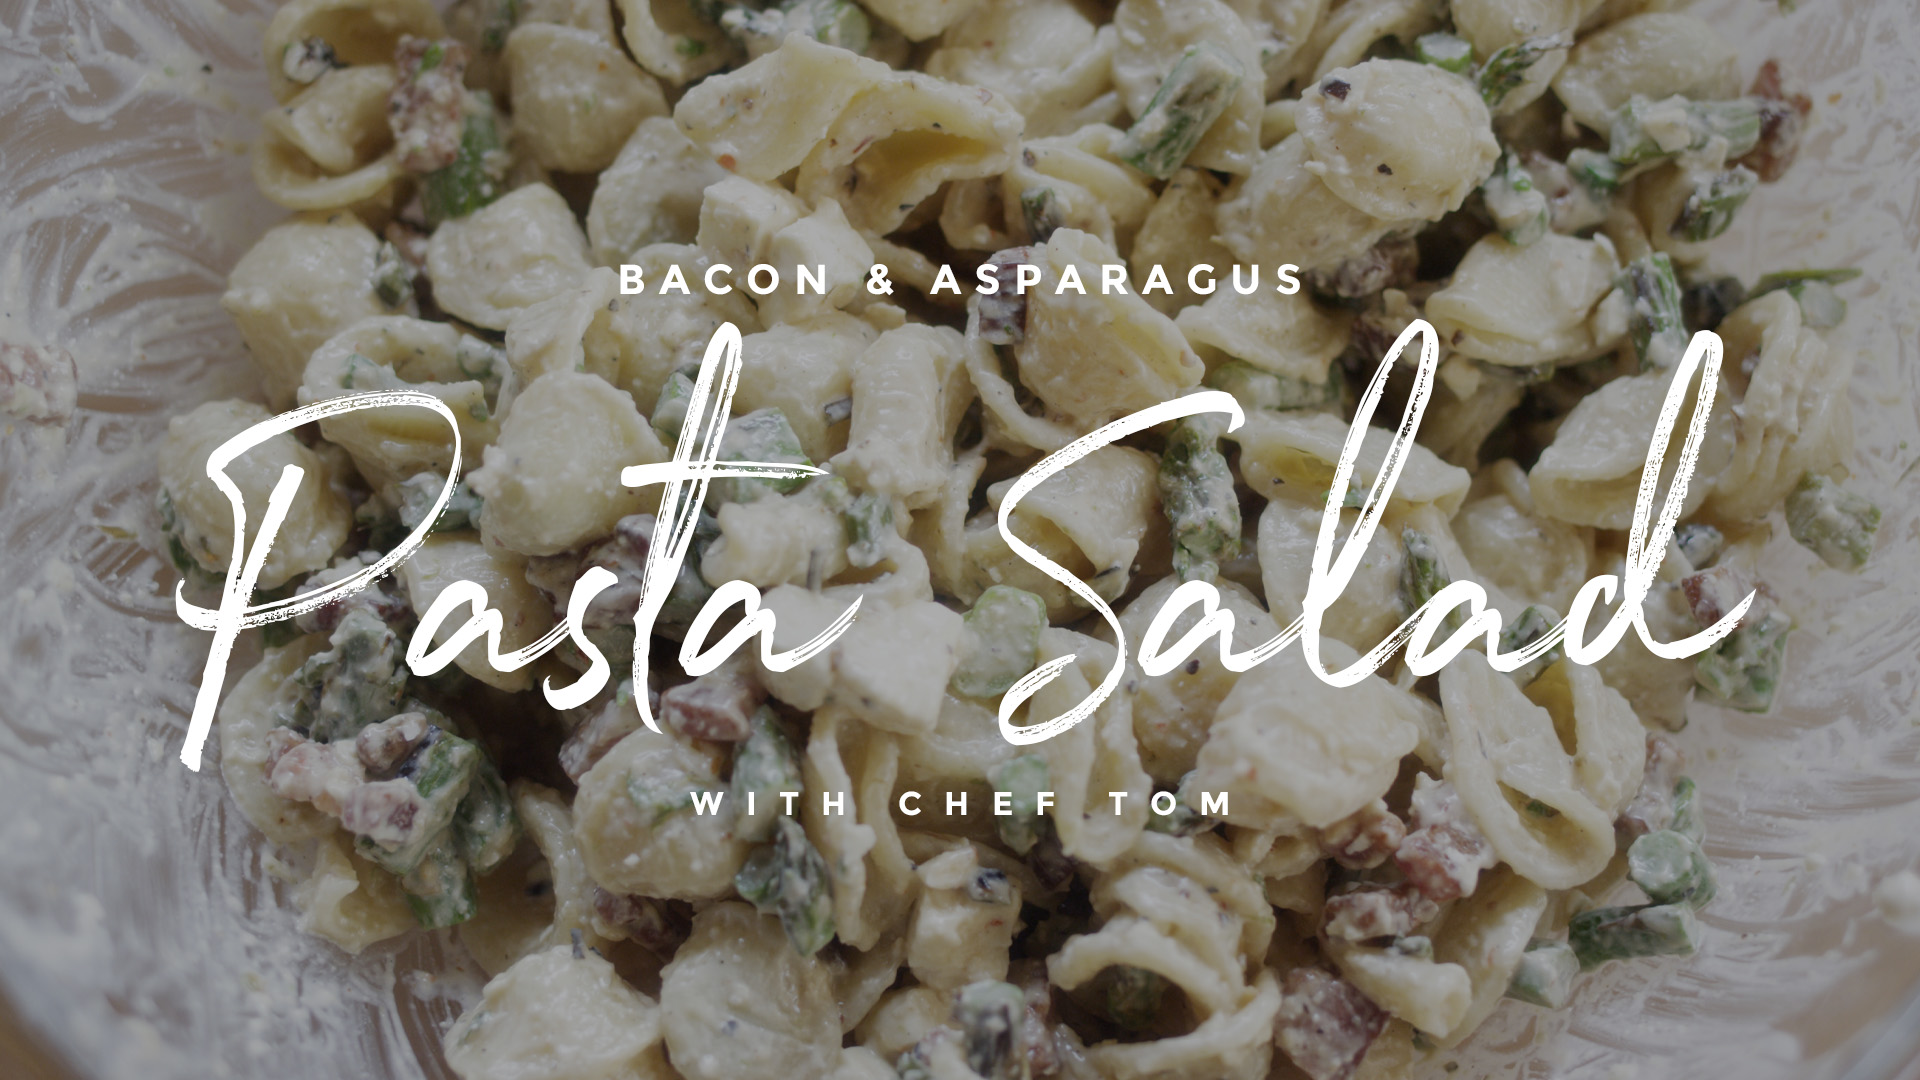 Bacon & Asparagus Pasta Salad Recipe